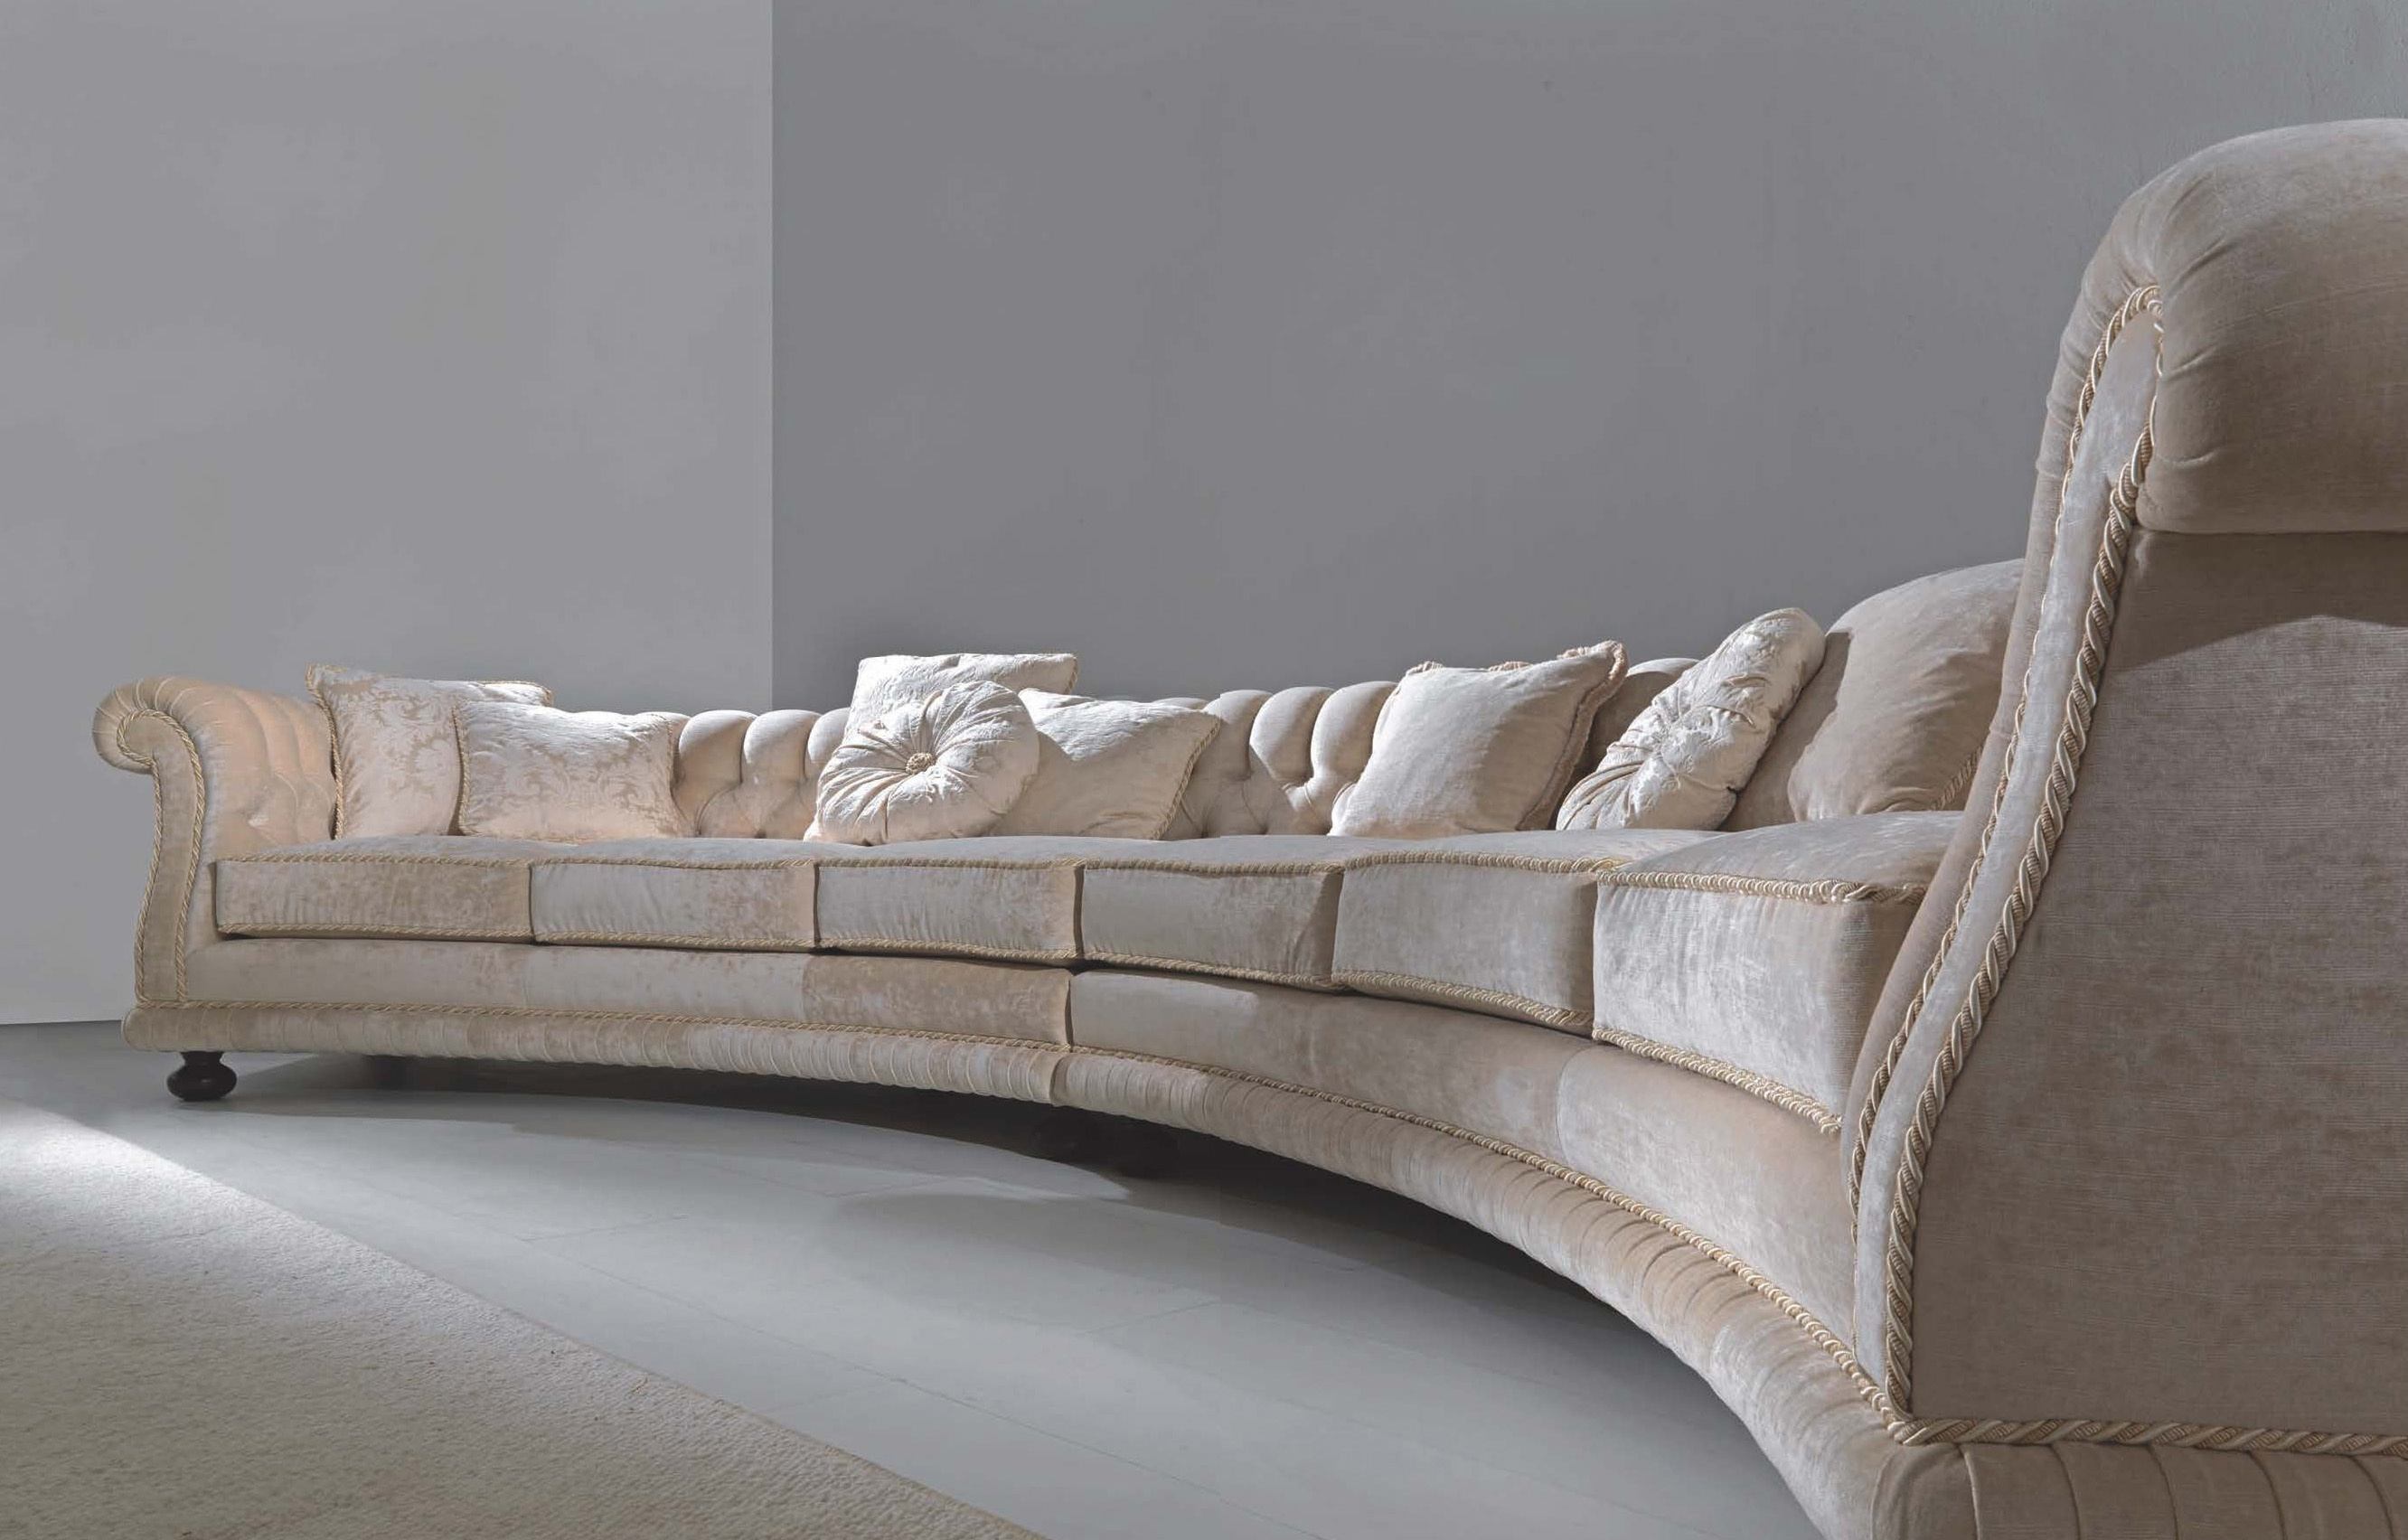 Semi circular sofa versailles asnaghi made in italy for Semi classic sofa